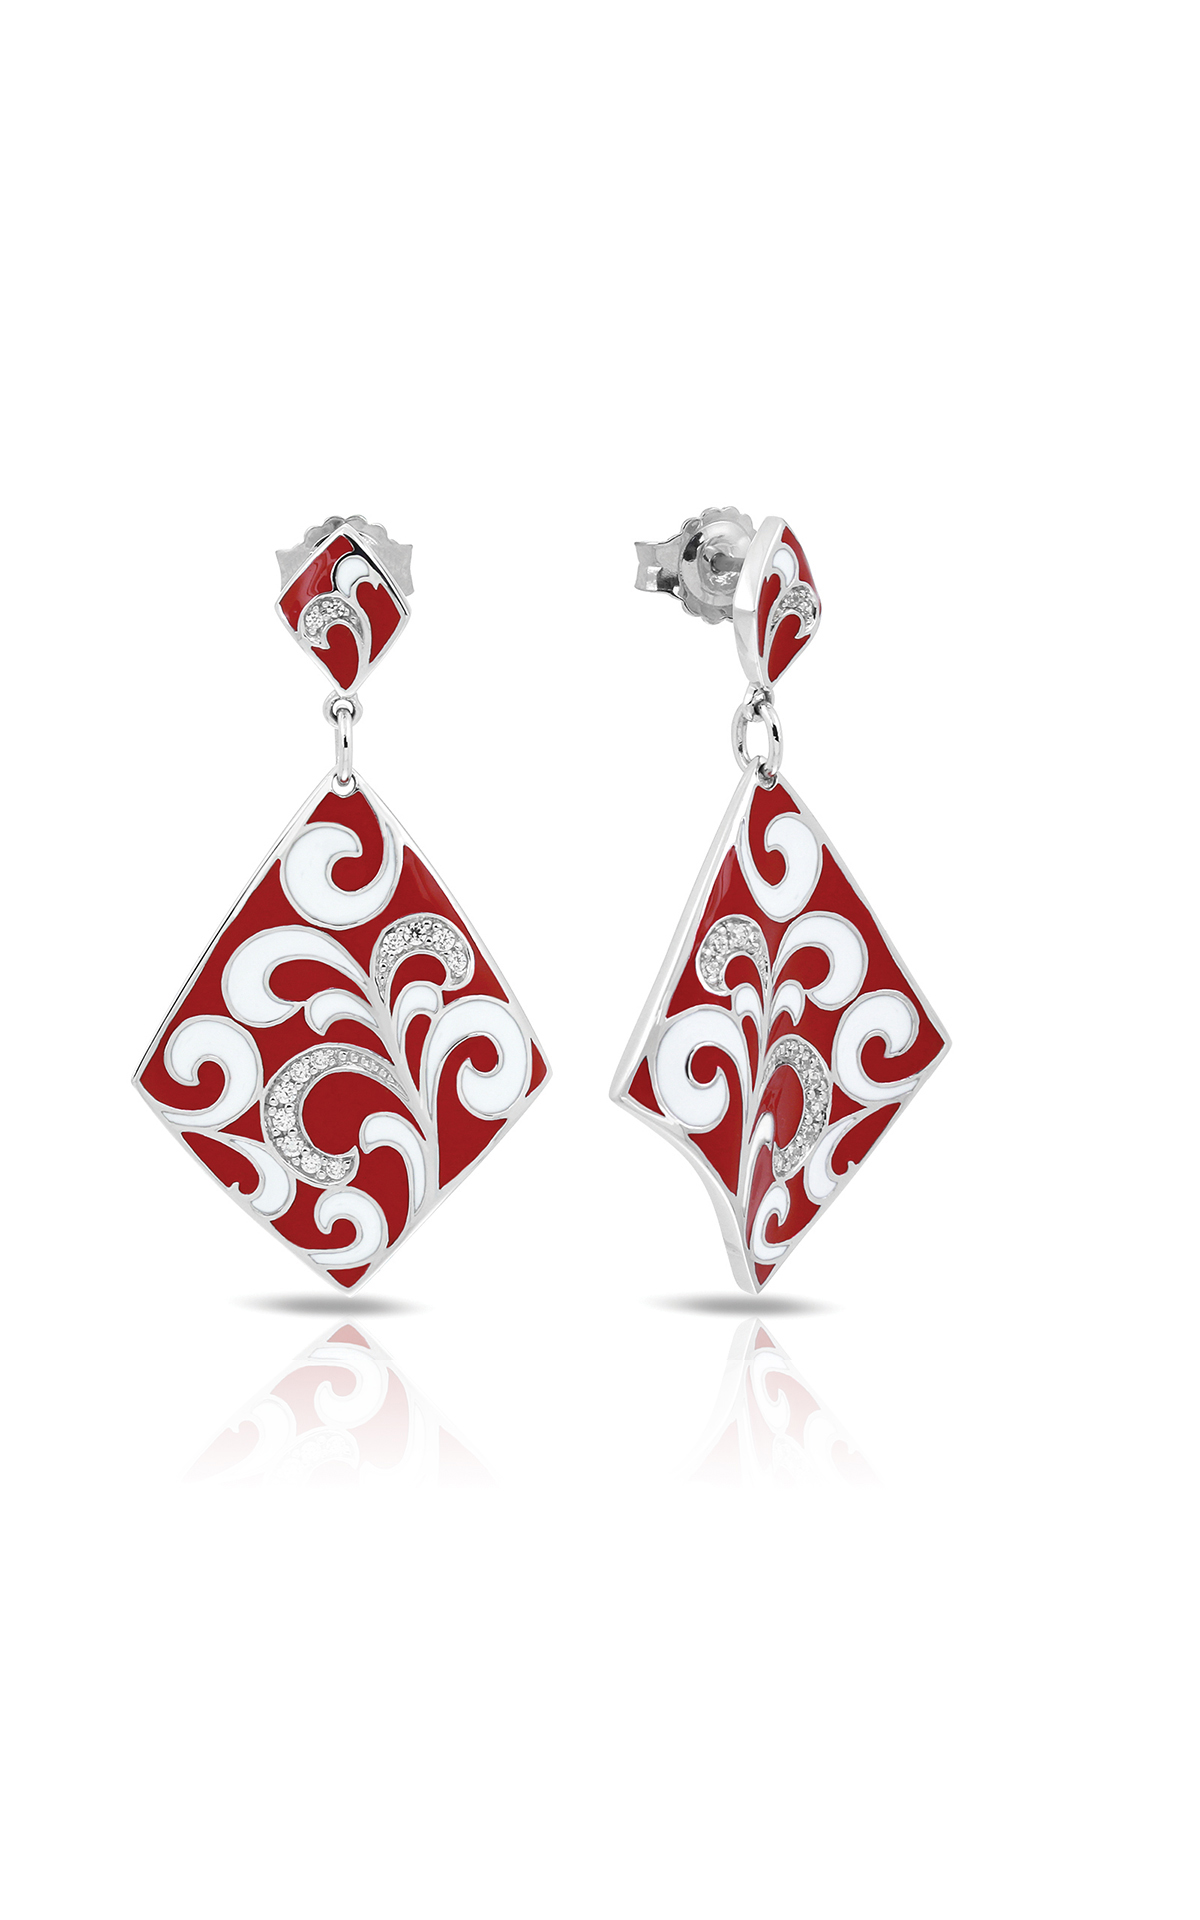 Belle Etoile Contessa Red Earrings 3021610302 product image